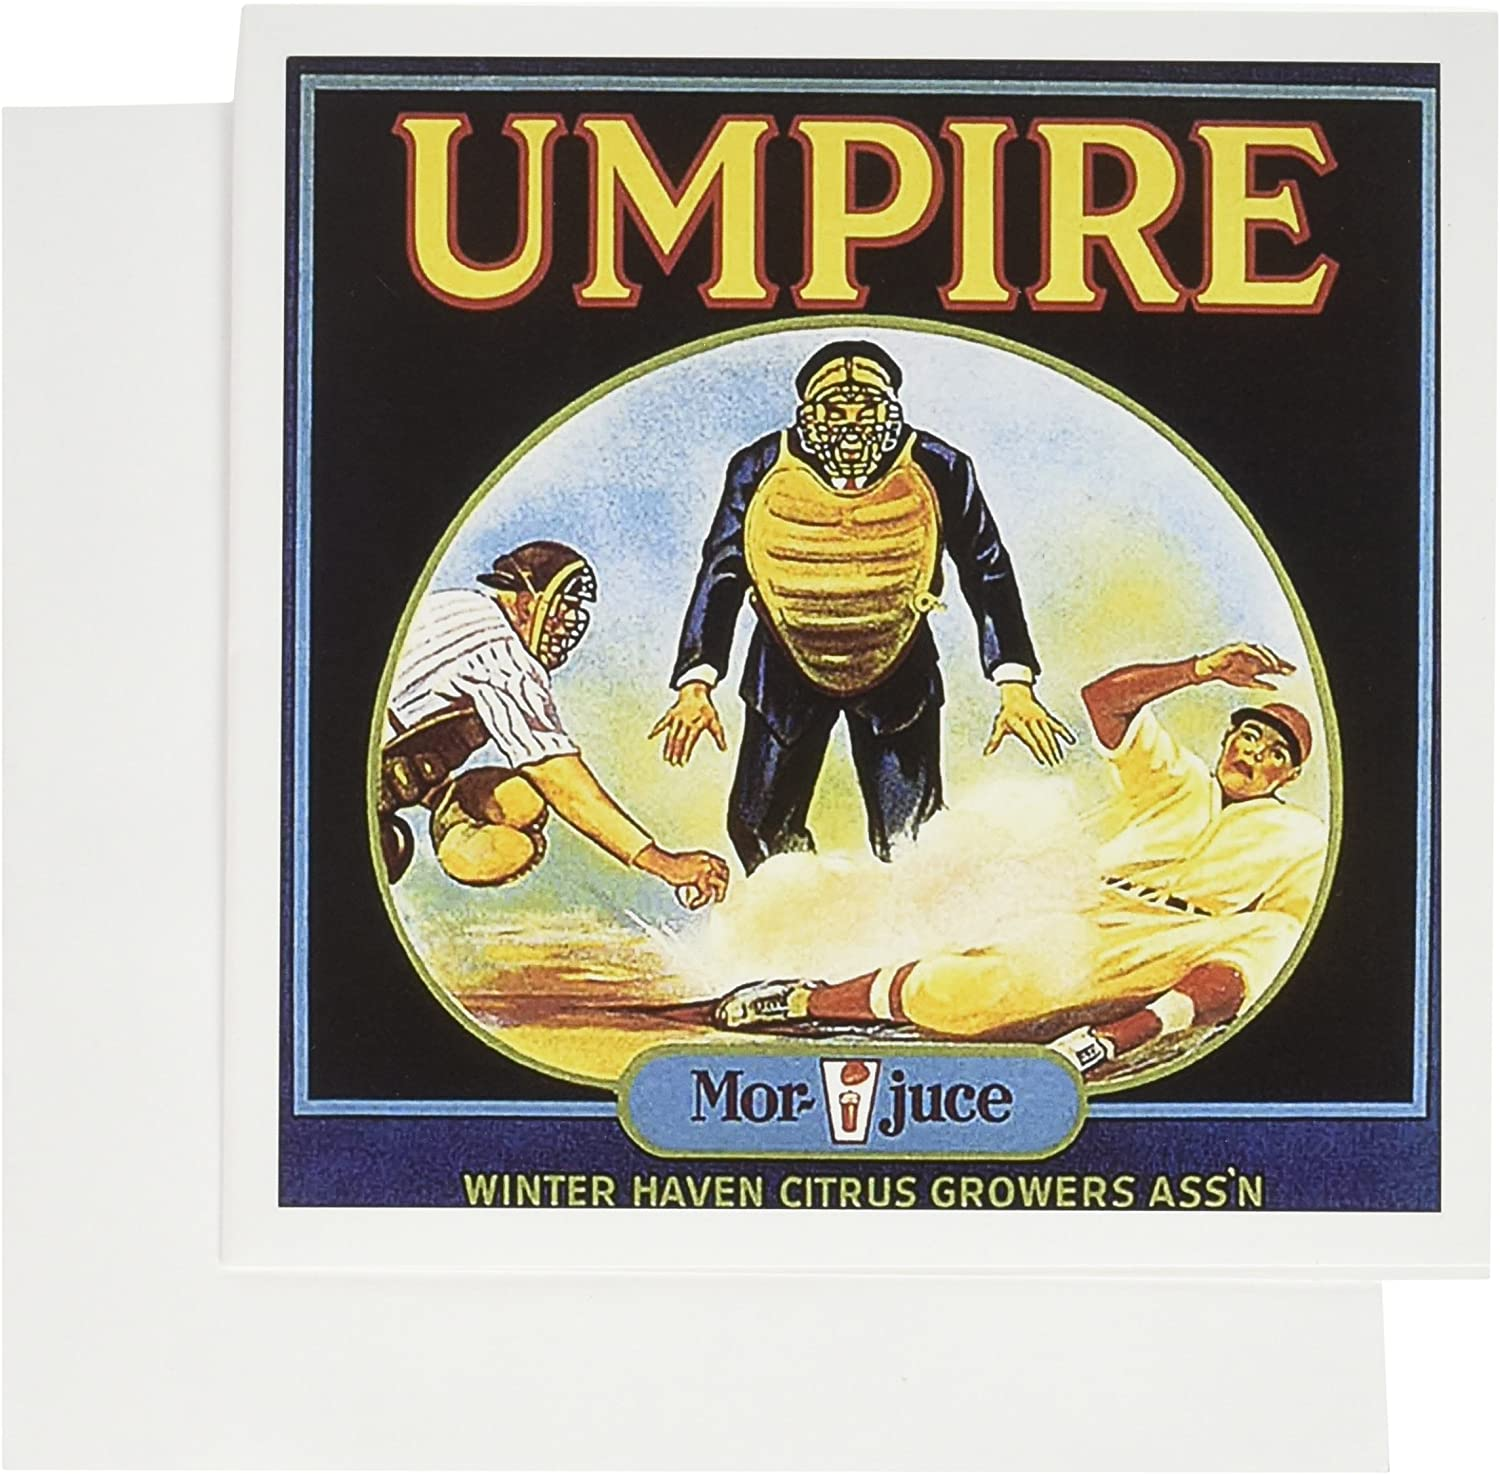 3dRose Vintage Baseball Umpire Food Ad - Greeting Cards, 6 x 6 inches, set of 12 (gc_153841_2)